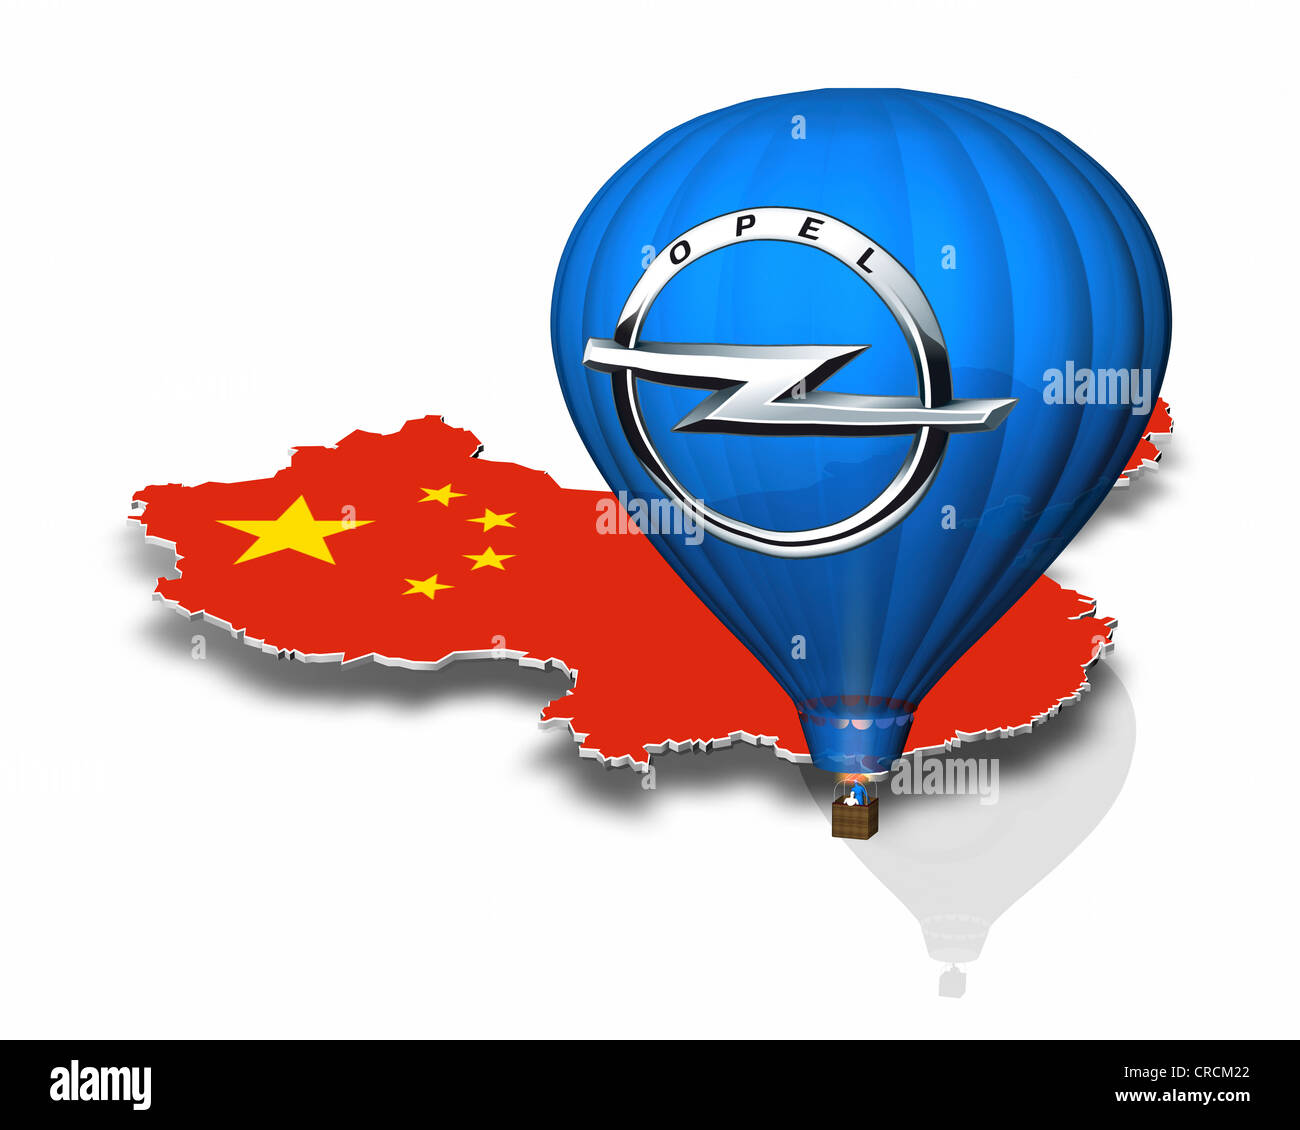 Outline of China, hot-air balloon, Opel logo - Stock Image